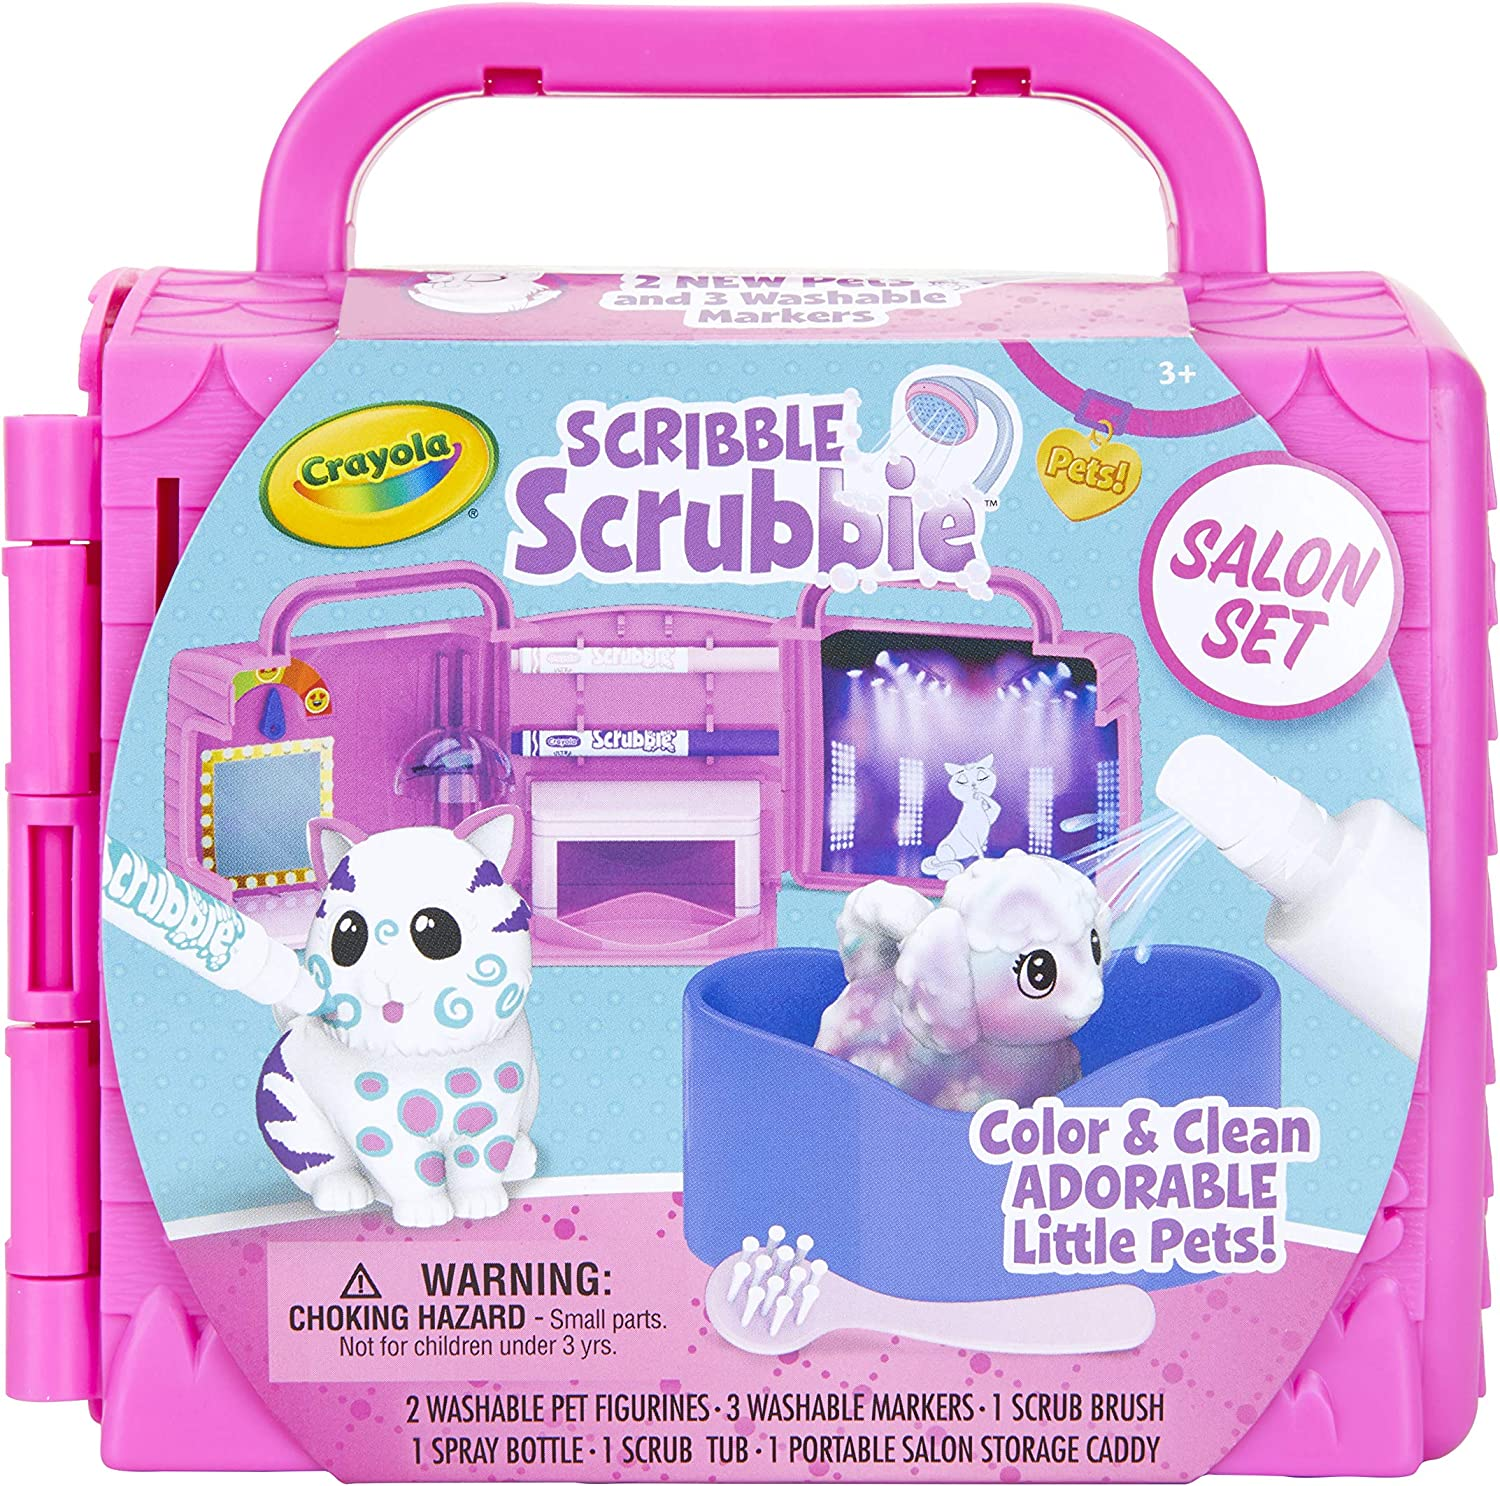 Crayola Scribble Scrubbie Pets  Beauty Salon Playset with Toy Pets  Gift for Kids